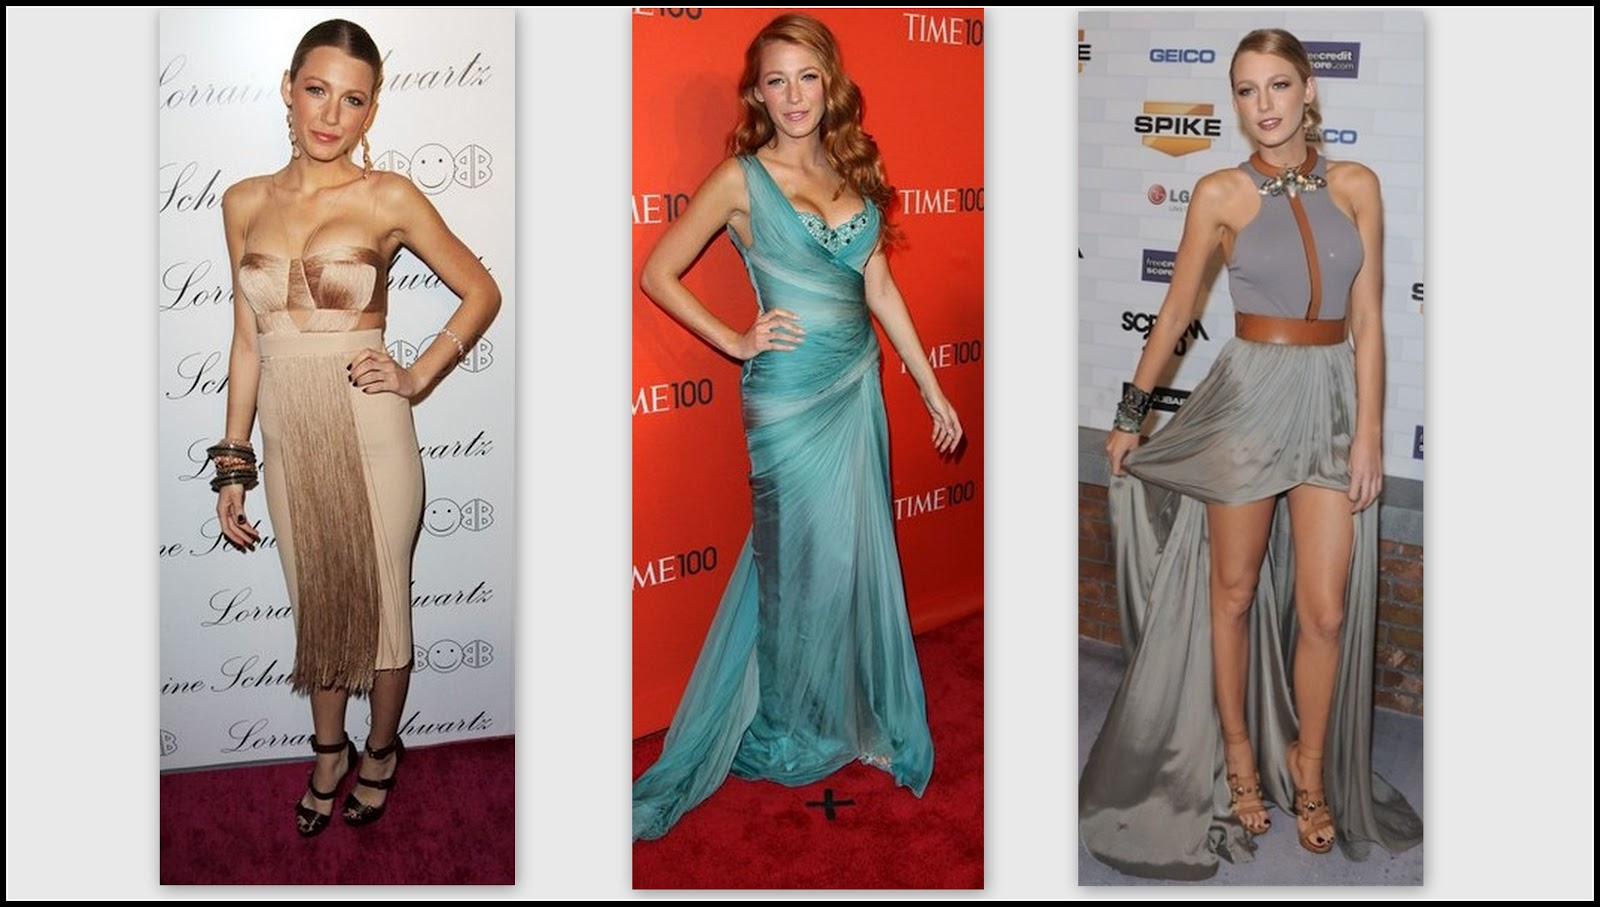 http://2.bp.blogspot.com/-Tr6jPbYNlBg/T5cOygsi7DI/AAAAAAAAB4E/bhOaChrXp3s/s1600/Style+Crush-+Blake+Lively-+Dresses+on+the+red+carpet.jpg